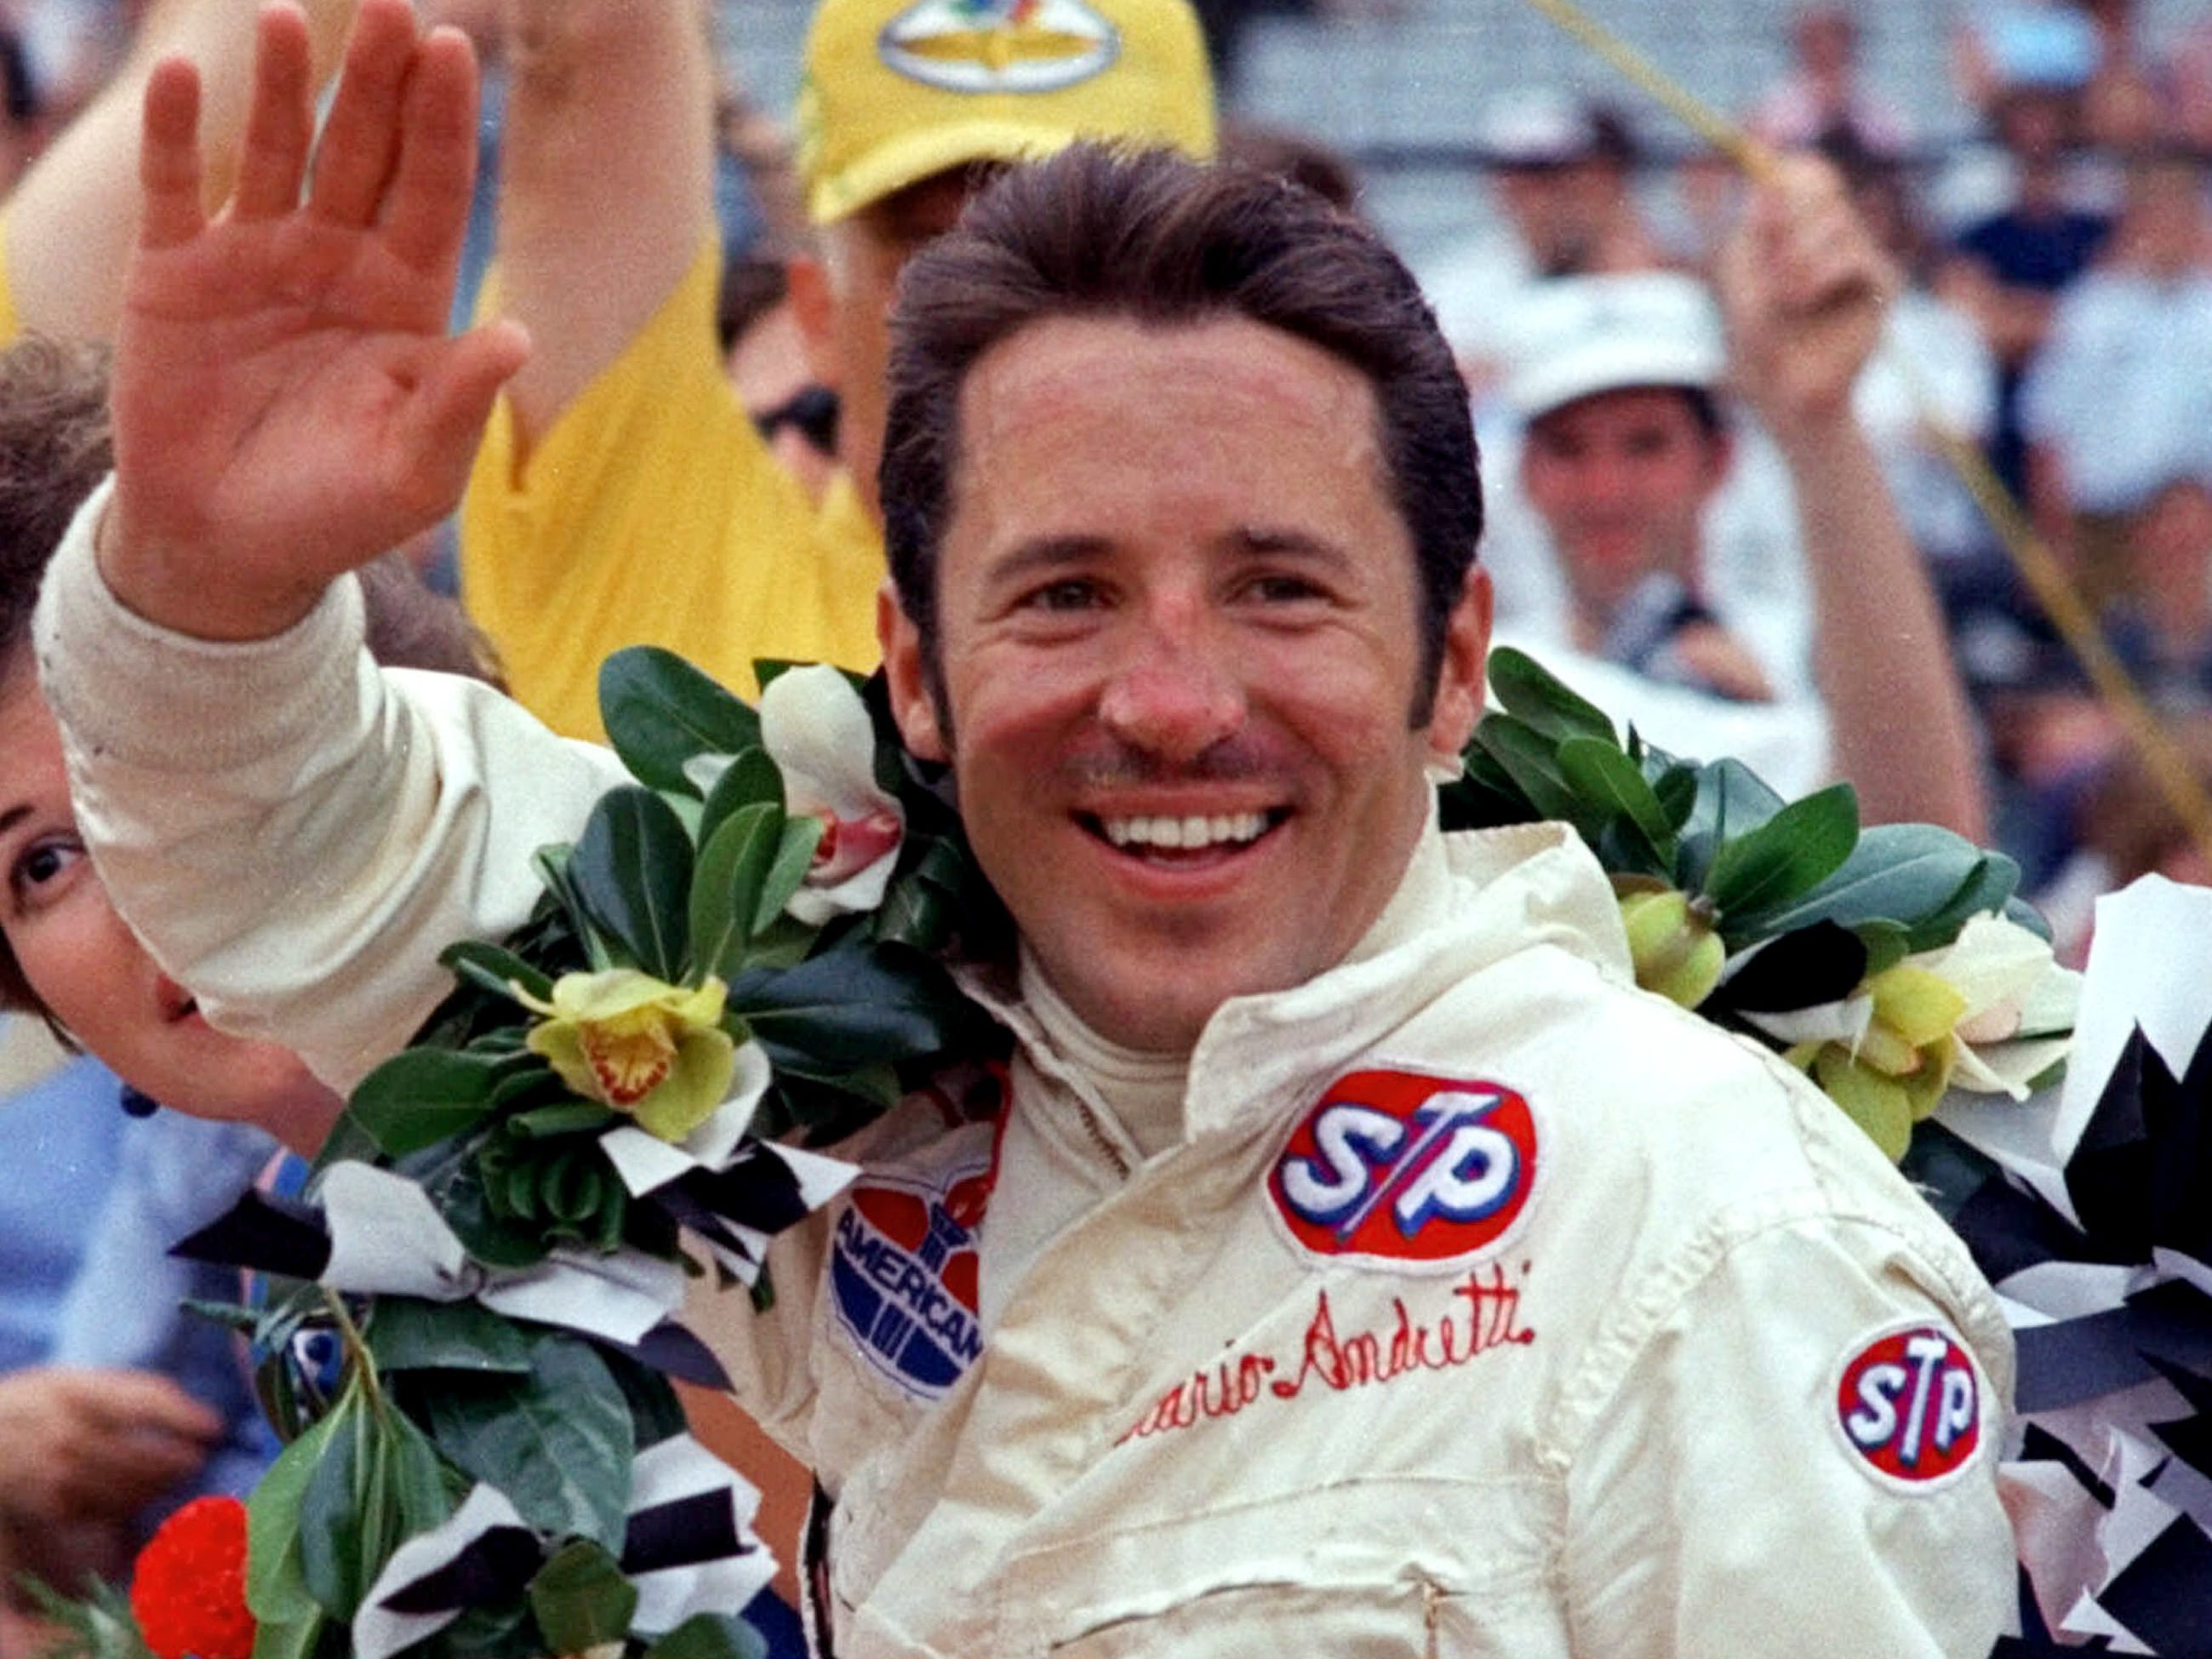 The legends of 1969: Mario Andretti's unlikely Indy 500 victory filled with racing lore